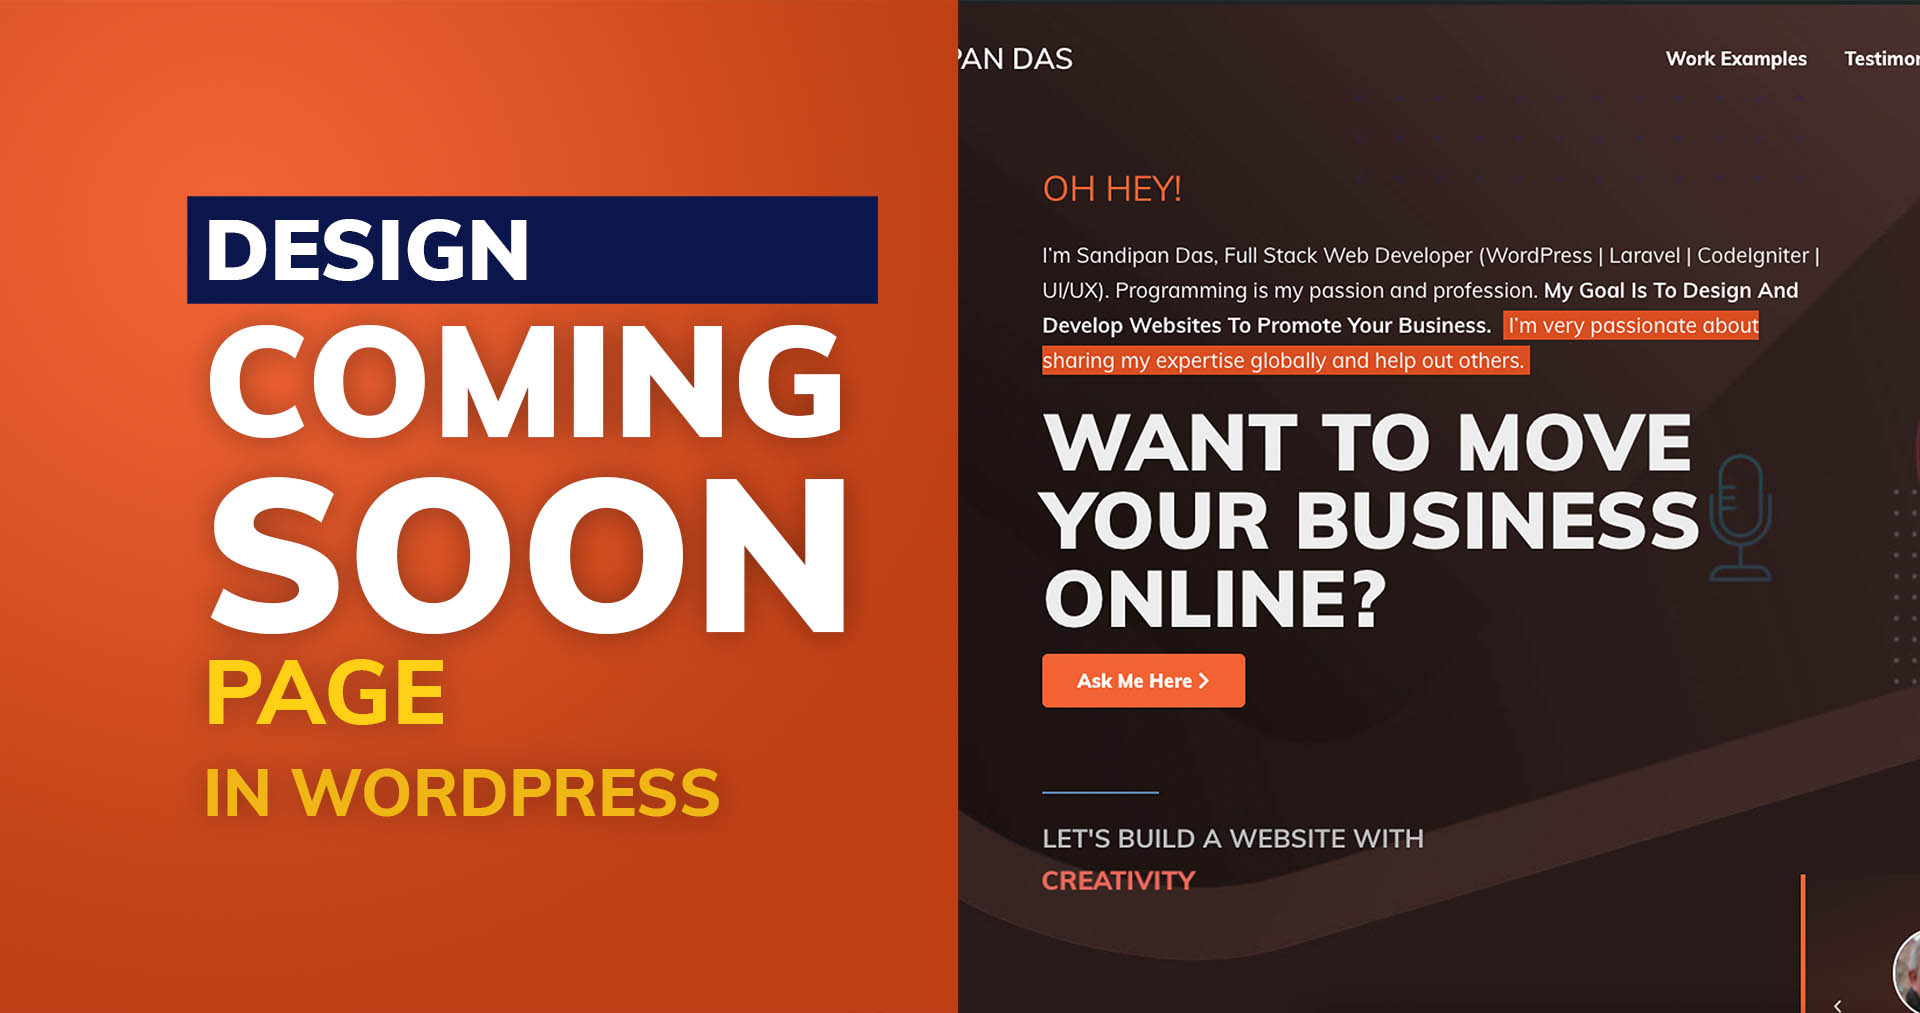 Comming Soon Page Design in WordPress